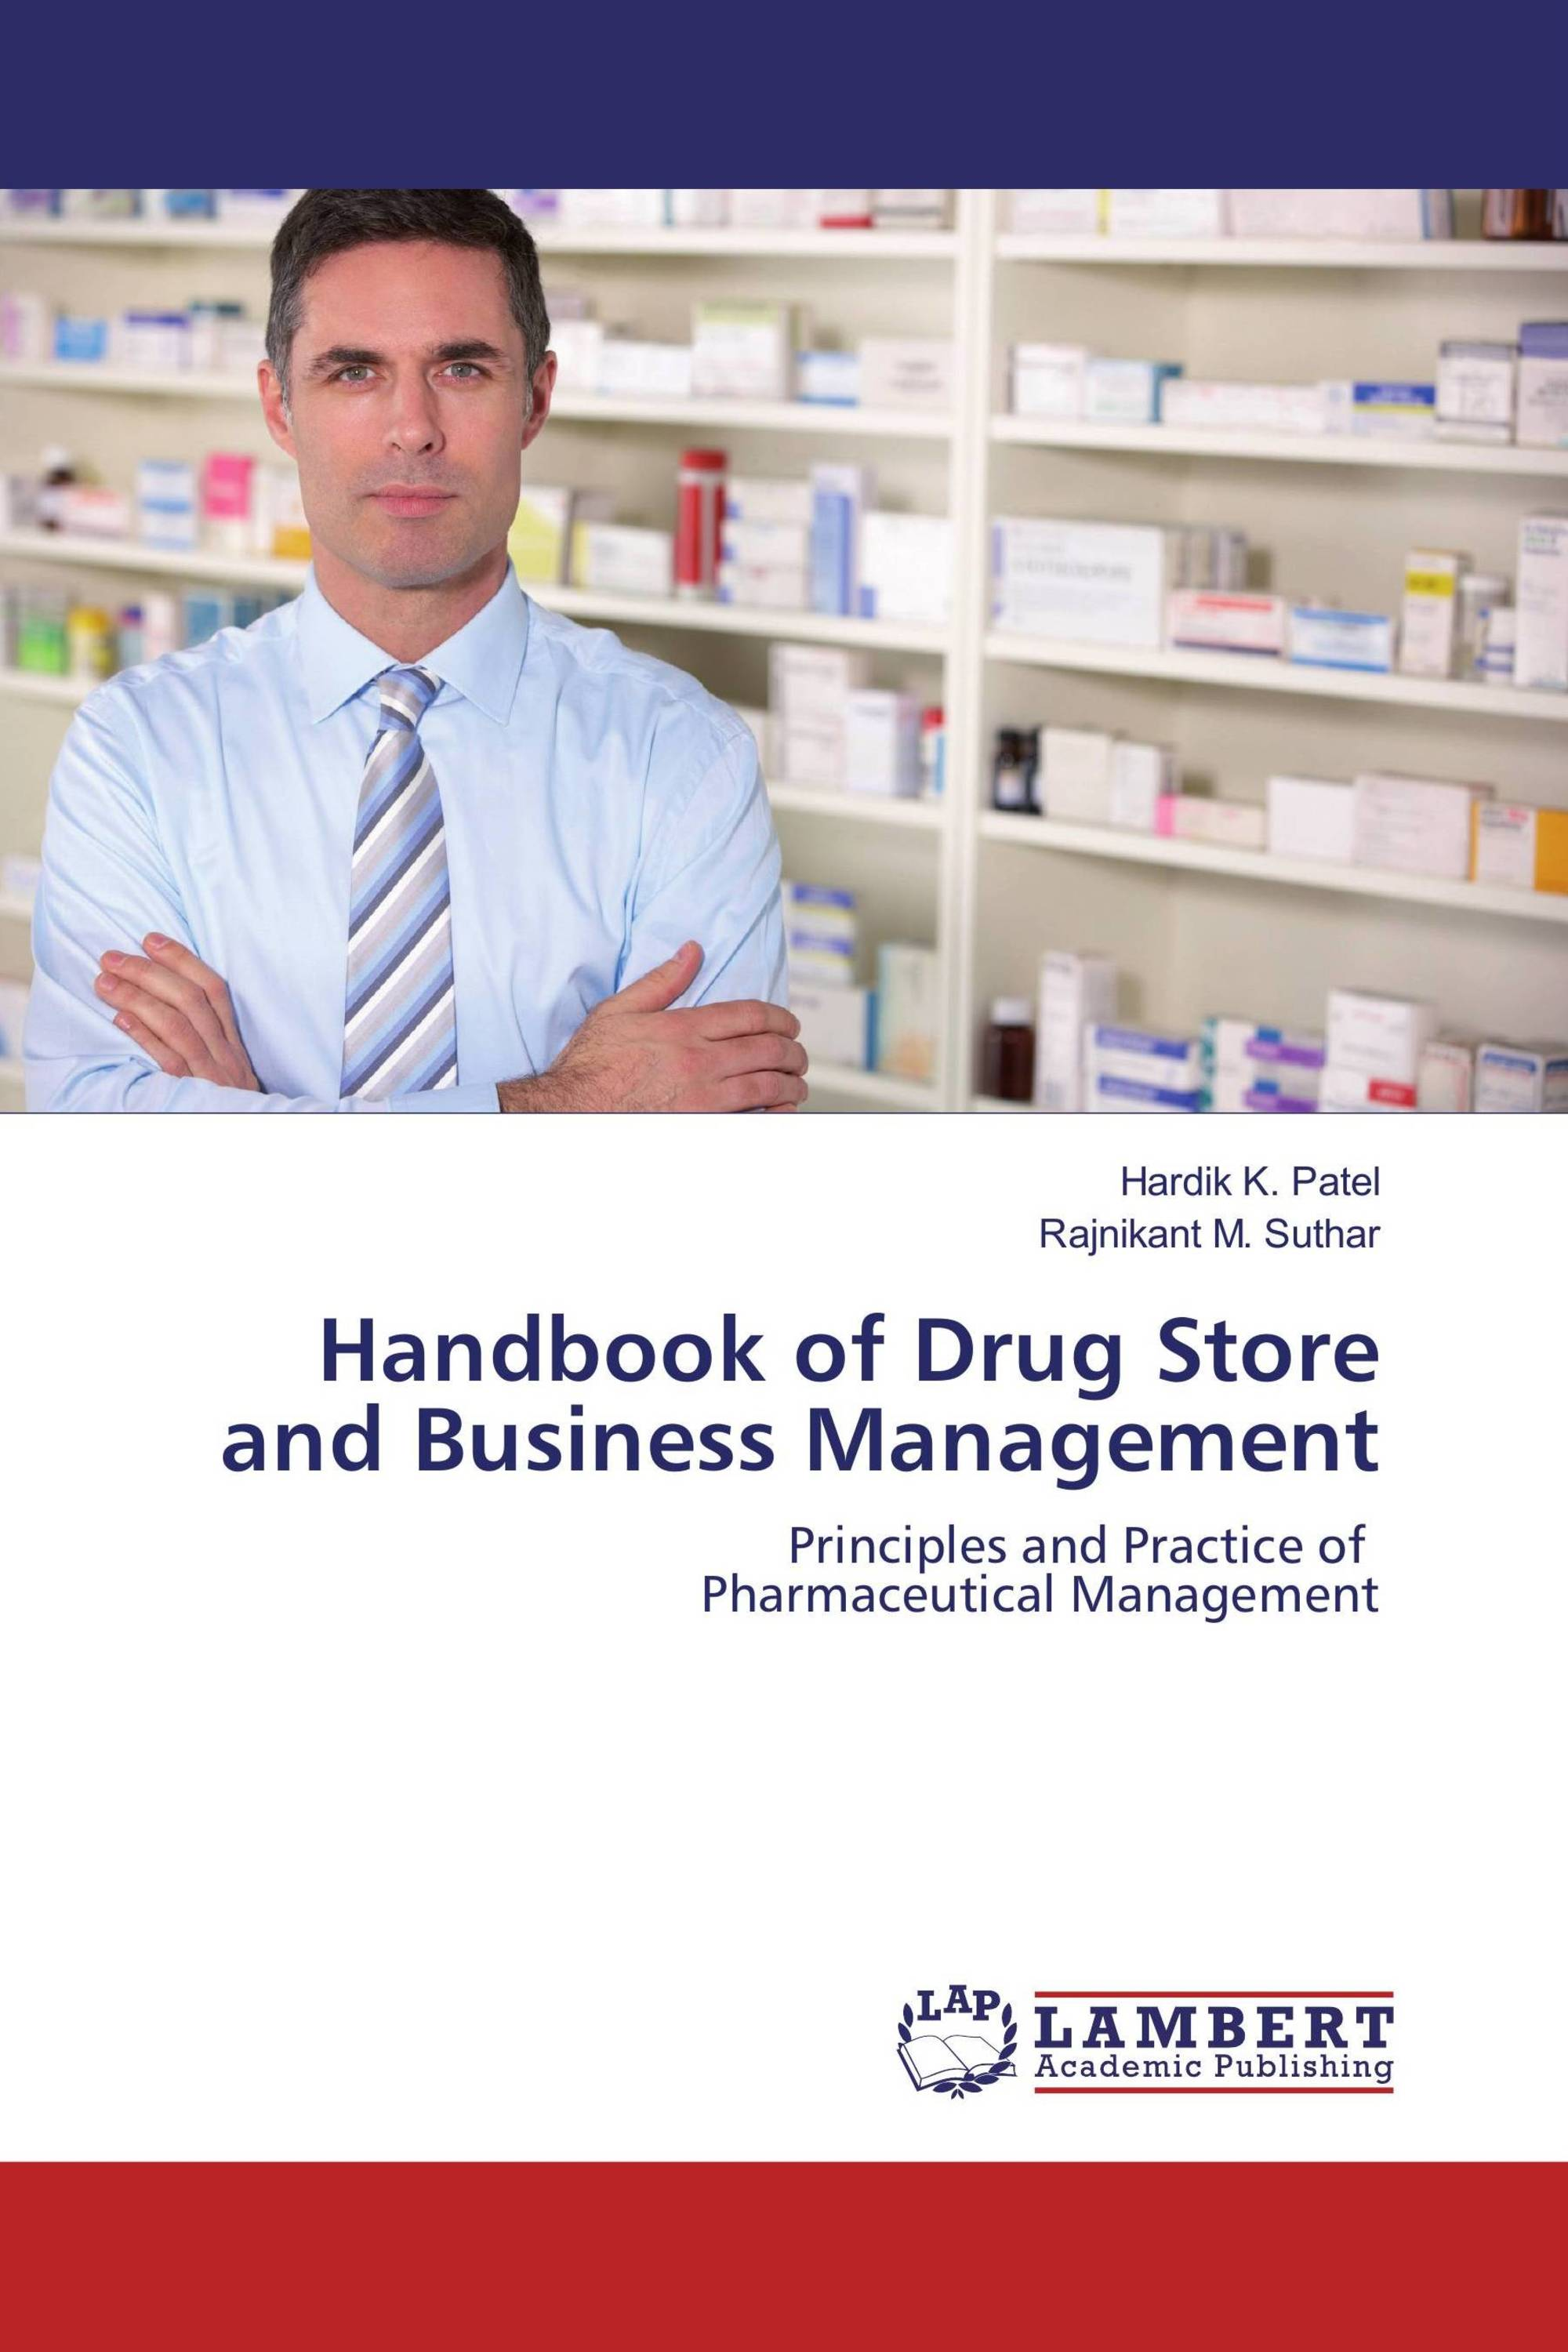 Handbook of Drug Store and Business Management / 978-3-659